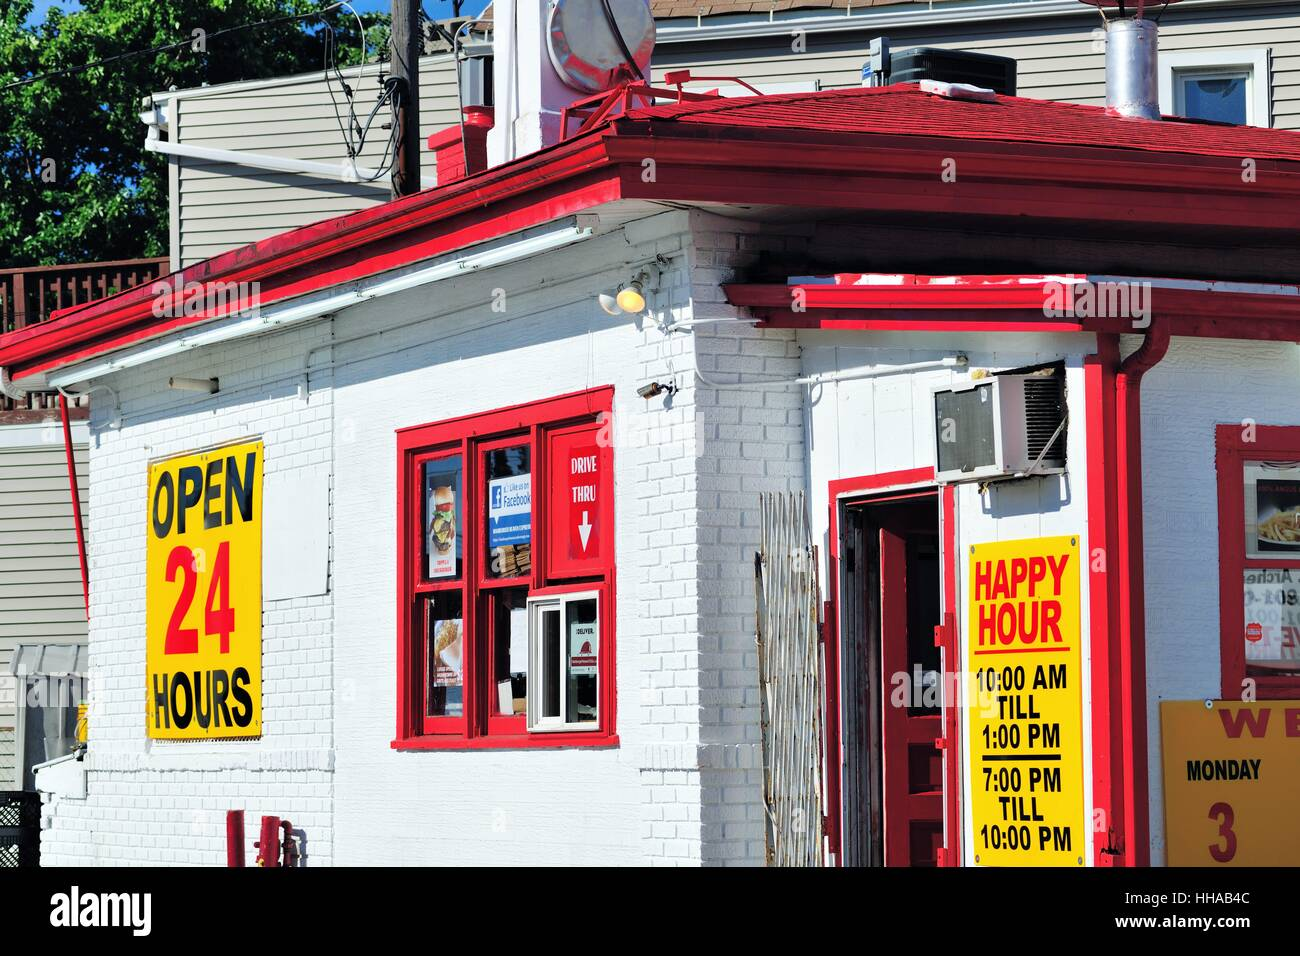 A small, colorfully trimmed drive-through restaurant establishment with extended happy hour periods in Chicago, - Stock Image